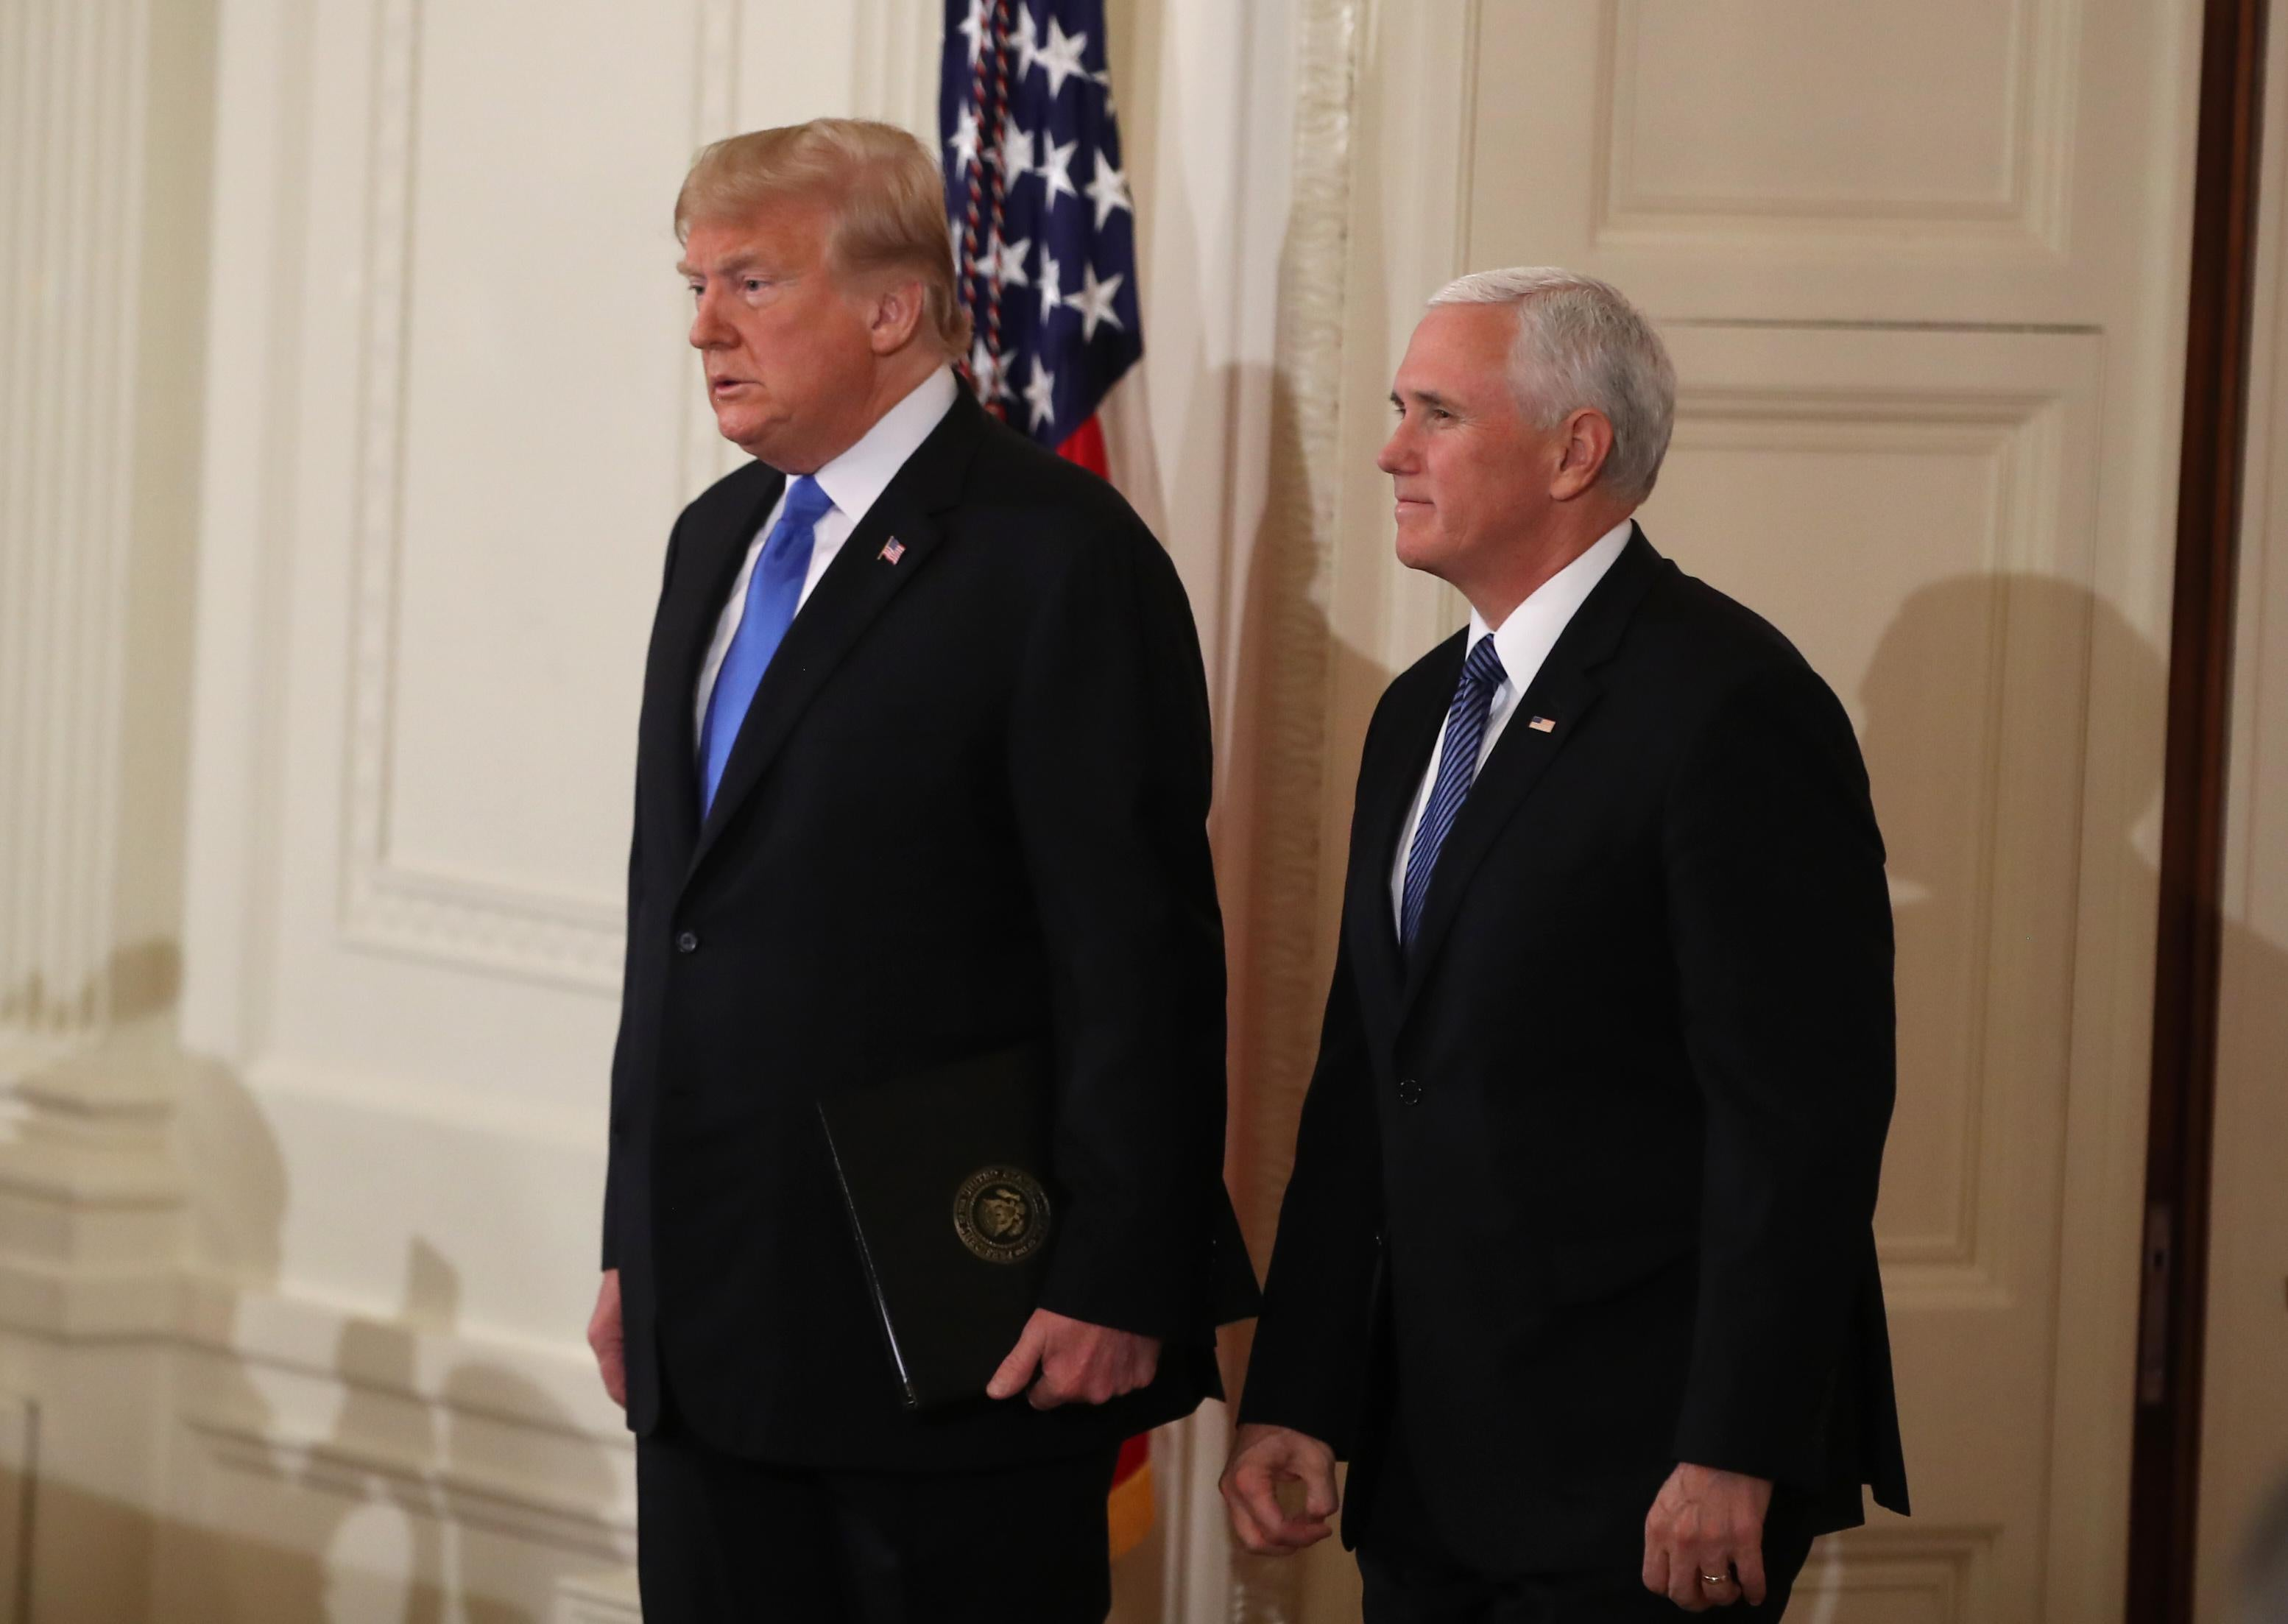 President Trump with Vice President Pence in the East Room of the White House.